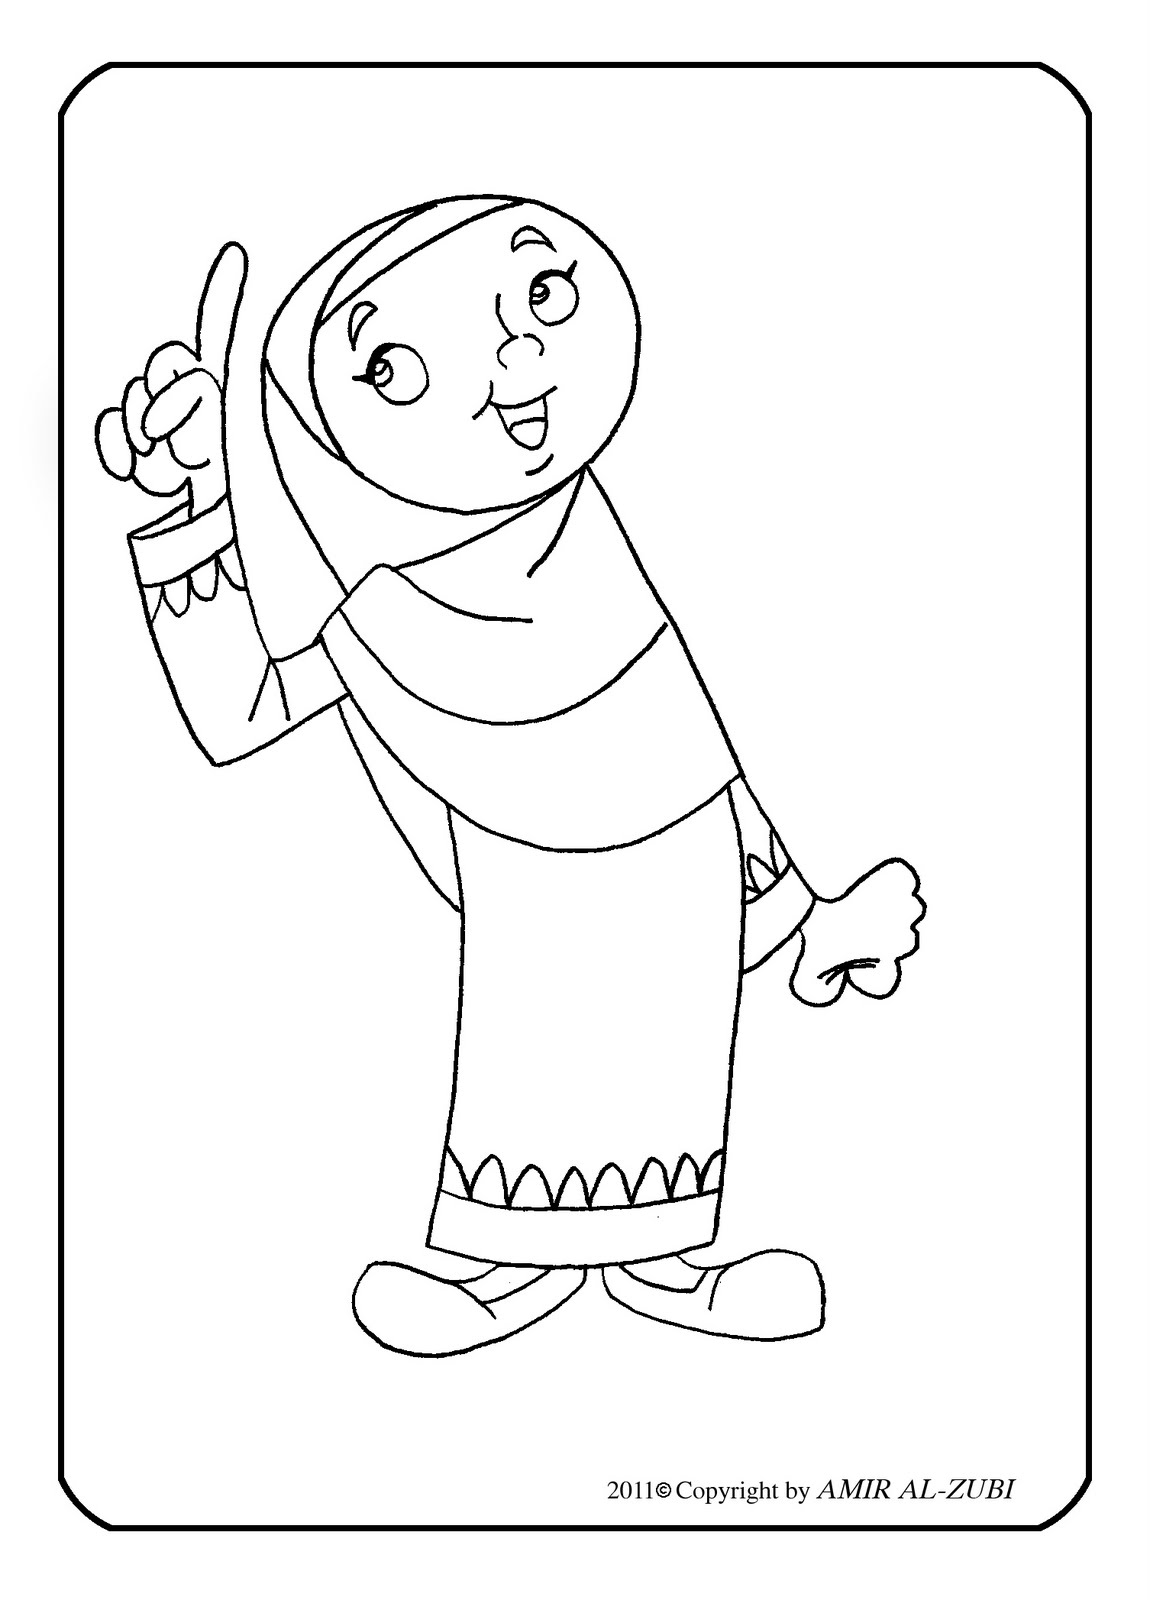 kids islam coloring pages - photo#36